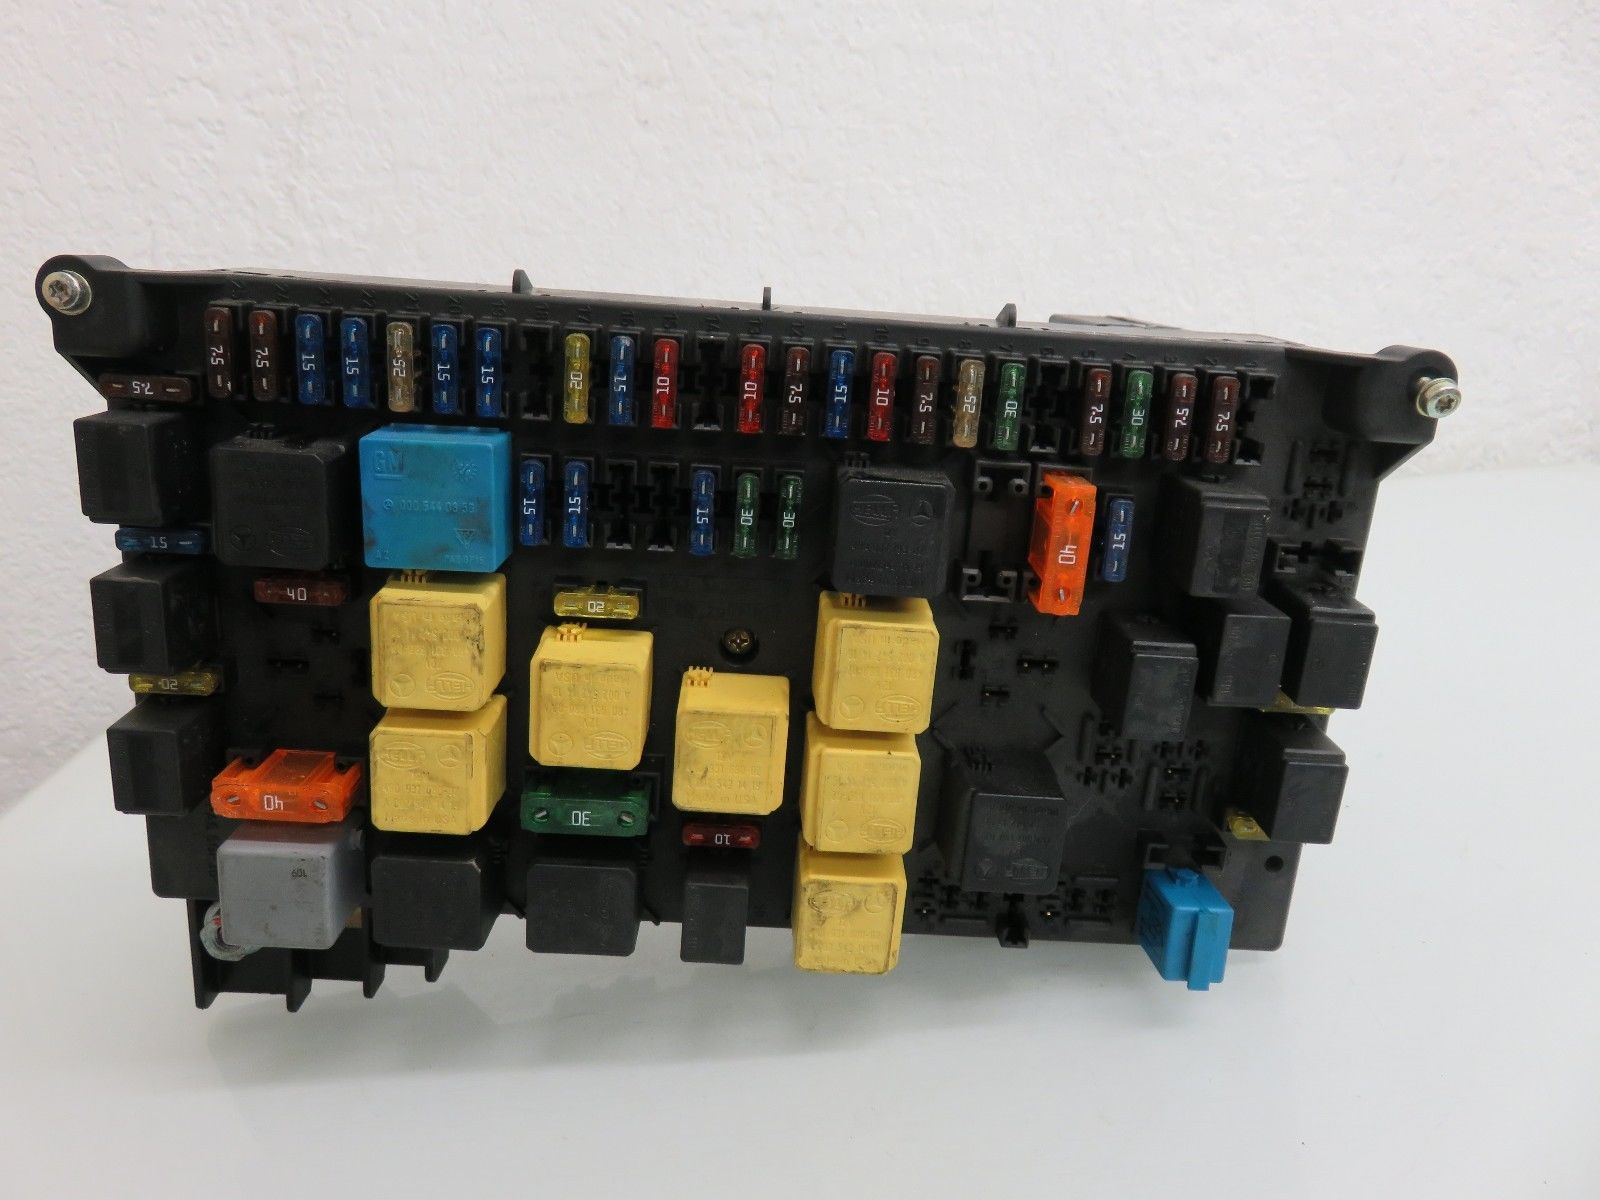 98 05 Mercedes W163 Ml320 Ml430 Ml500 Main Fuse Box Fusebox Relay Benz Module Oem A